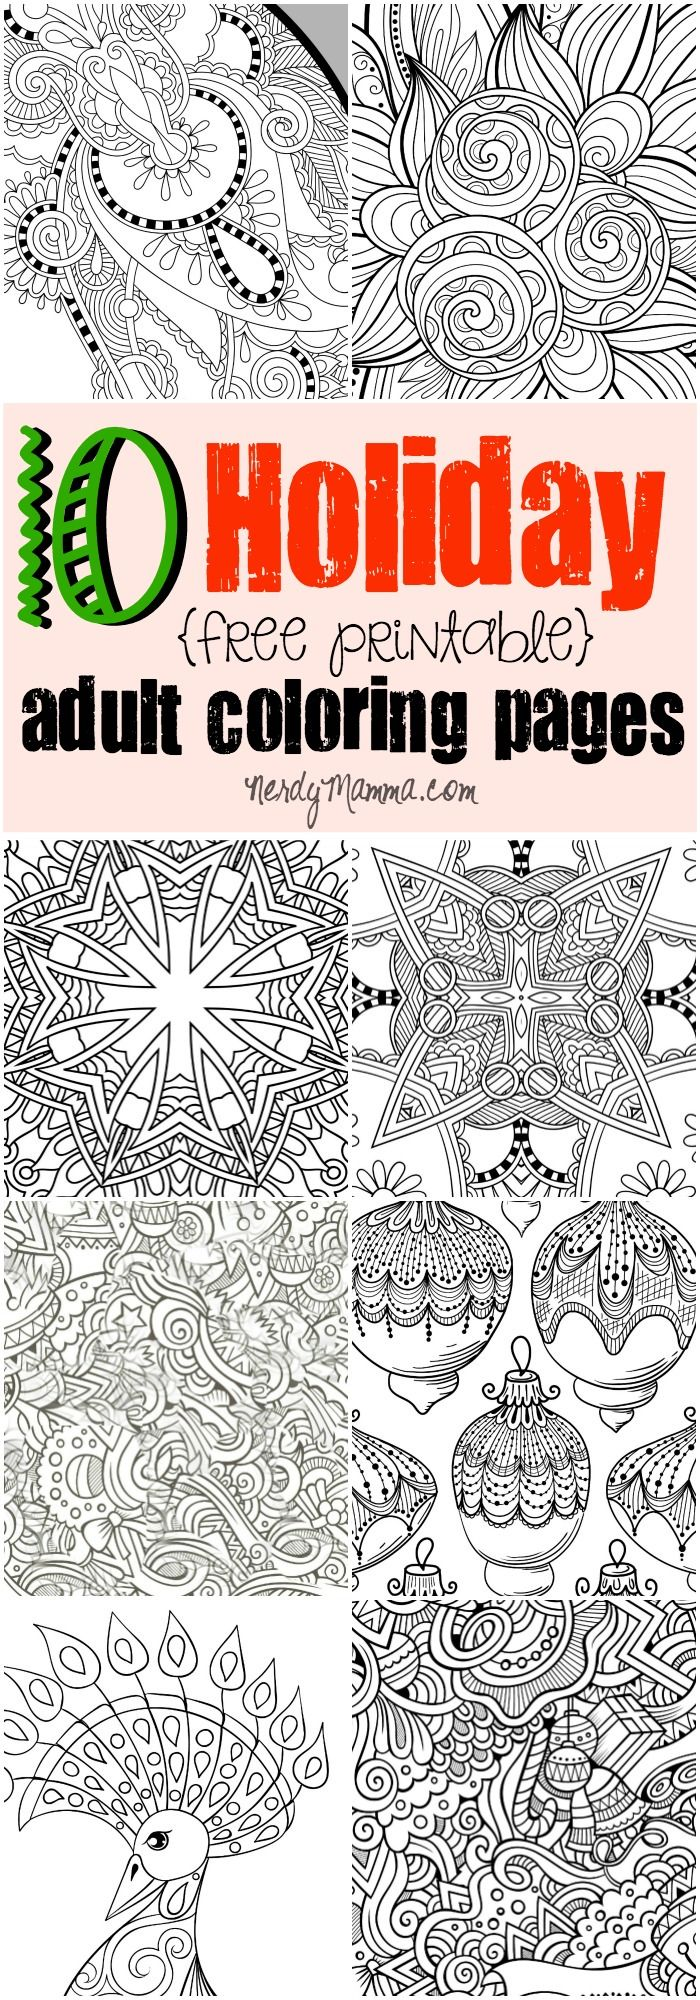 I Love These 10 Free Printable Adult Coloring Pages Mean Its Like A